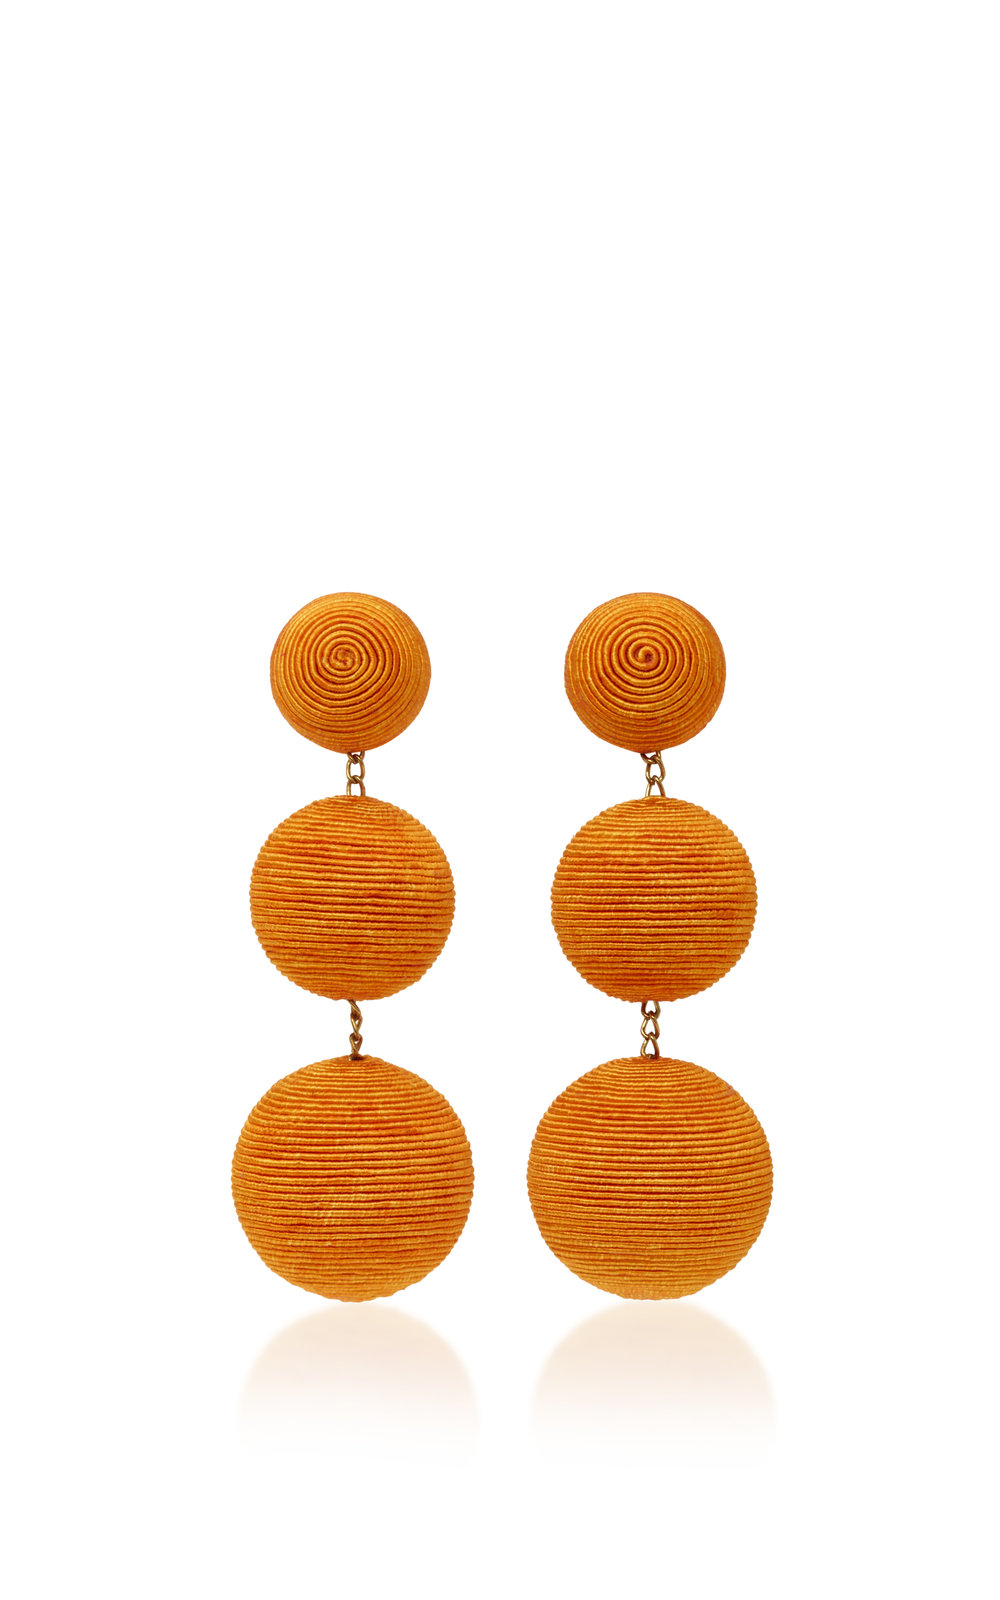 Splurge: Rebecca De Ravenel Les Bon Bons Earrings $295